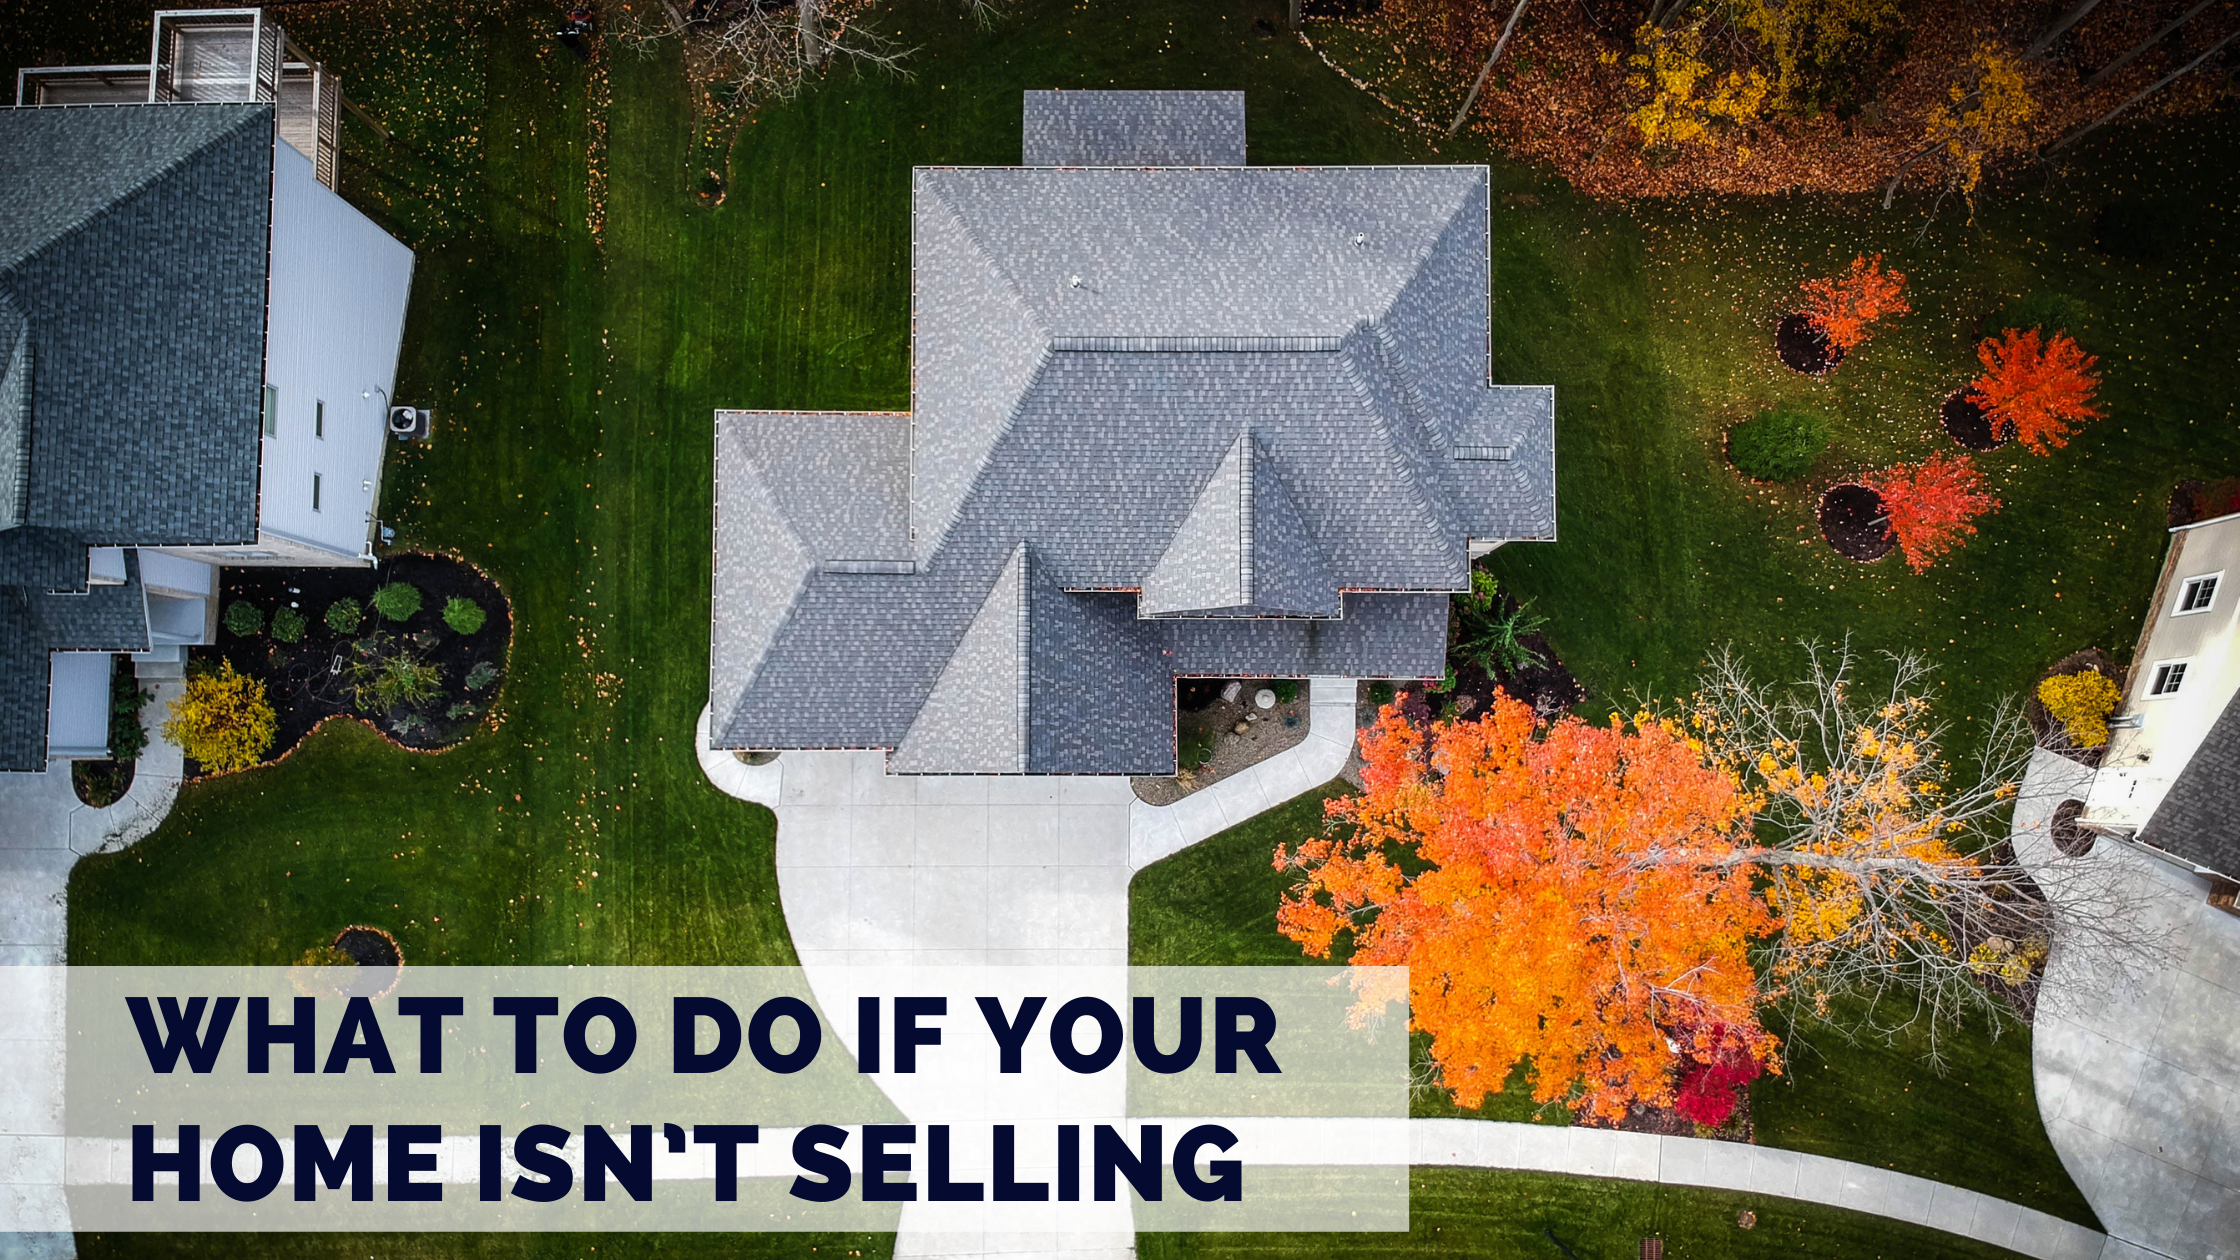 What to Do if Your Home Isn't Selling